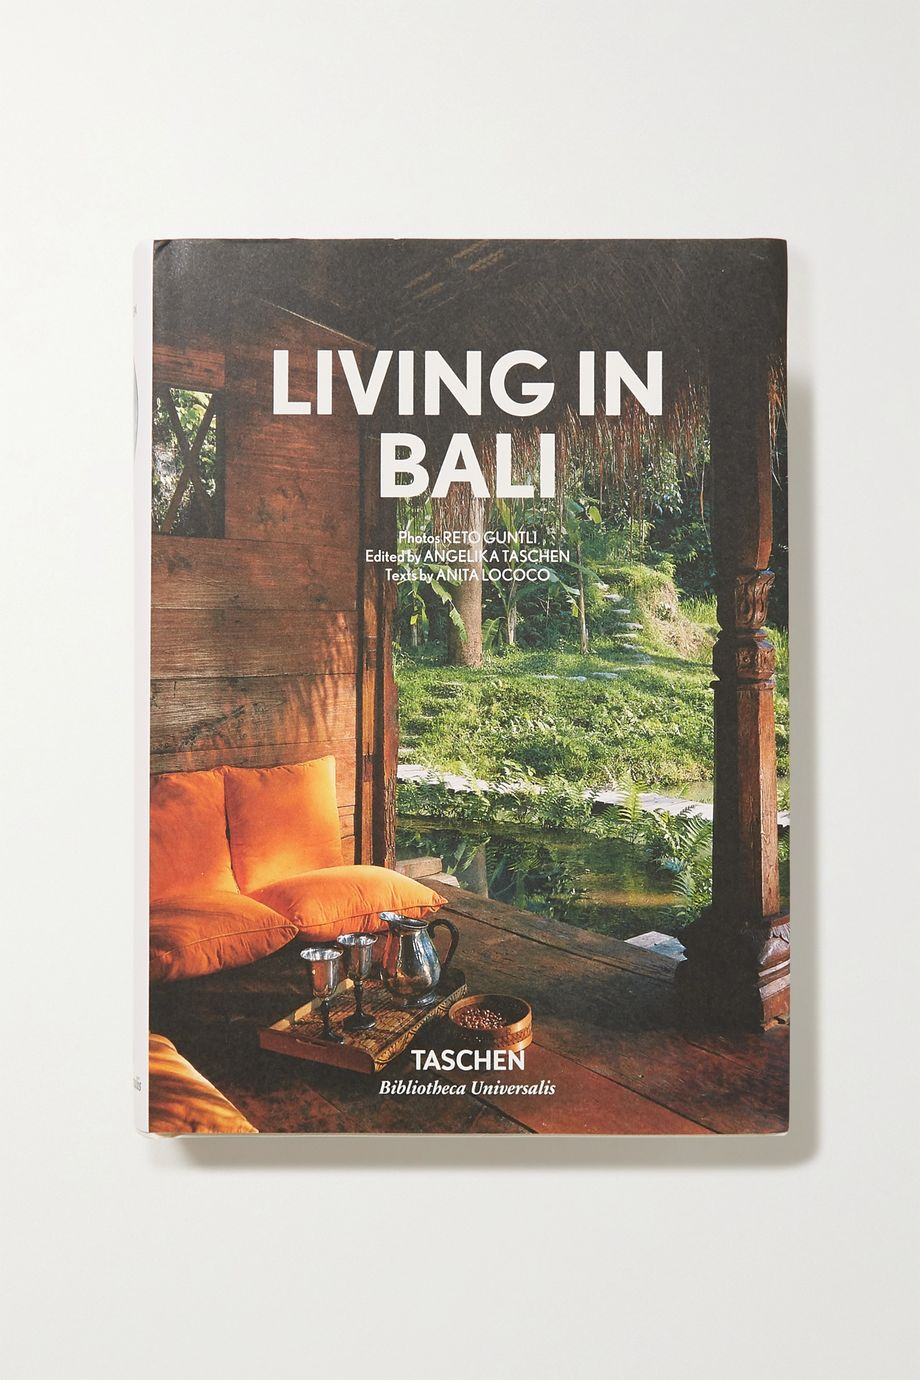 Taschen Living in Bali by Reto Guntli and Anita Lococo hardcover book